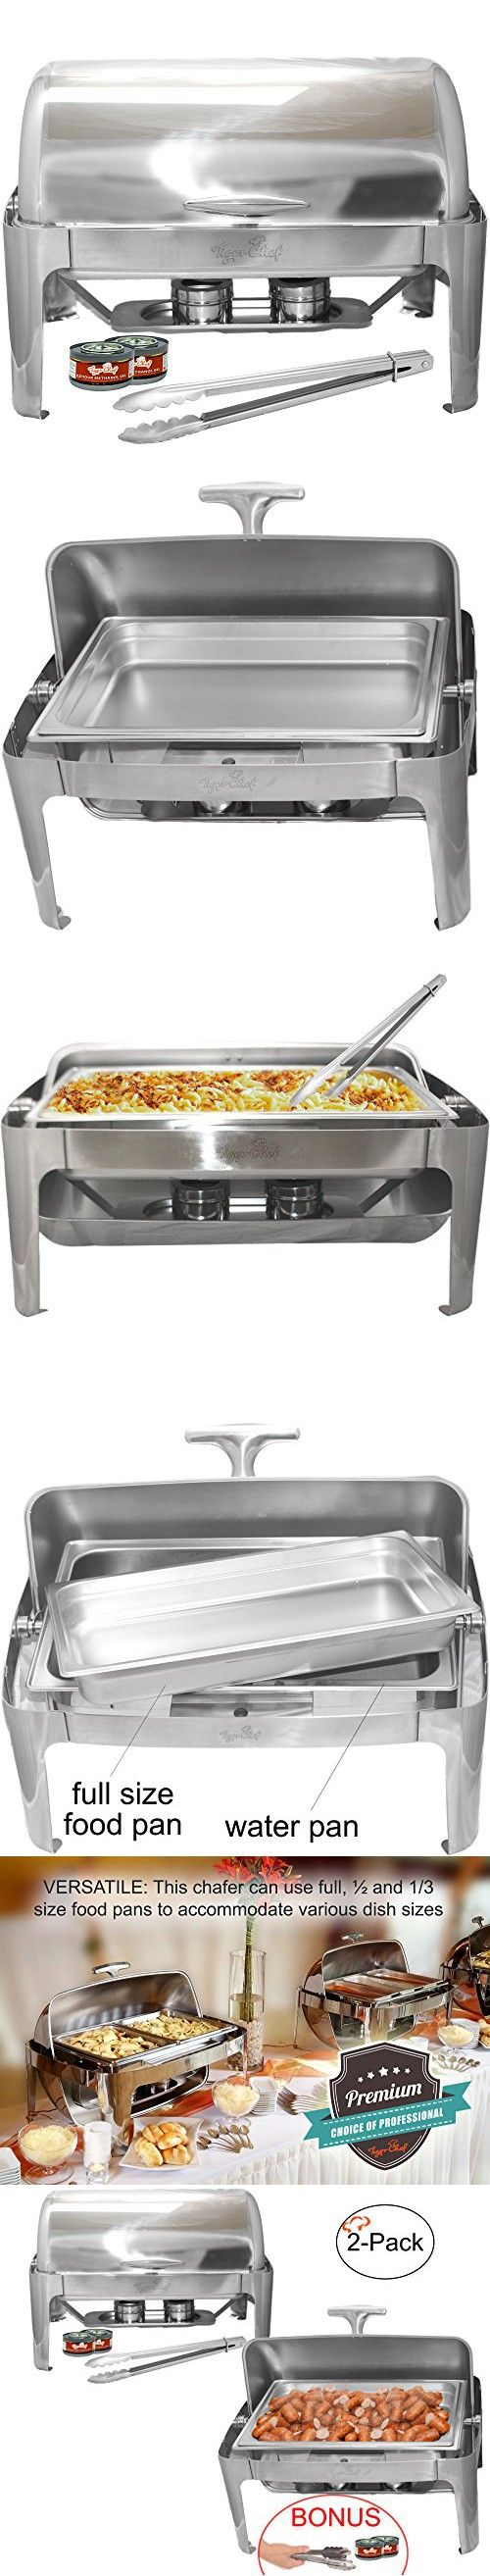 Tiger Chef Stainless Steel Roll Top Chafer, 8 Quart Chafing Dish Set with 2 Chafing Dish Fuel Gels and a 16-Inch Stainless Steel Multi-Function Tong (2)